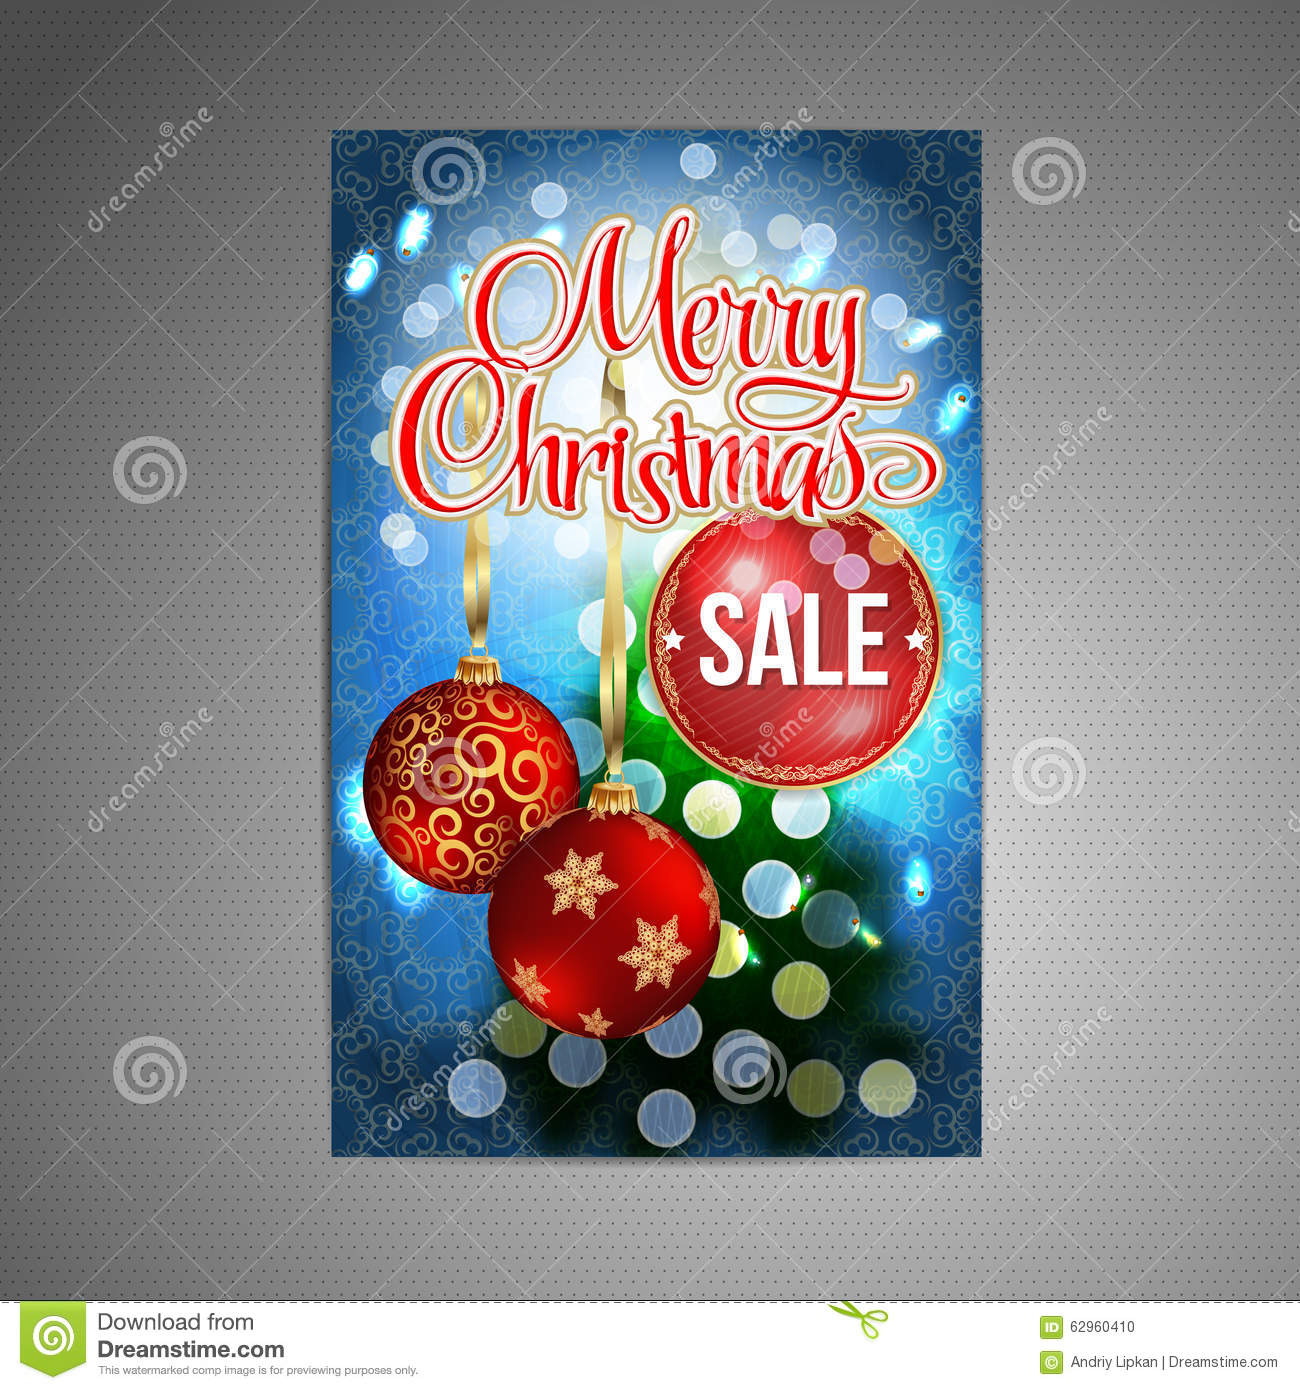 Christmas tree vector image royalty free stock image image 34973066 - Vector Christmas Sale Poster Background With Blurred Christmas Tree And Two Red Christmas Balls Vector